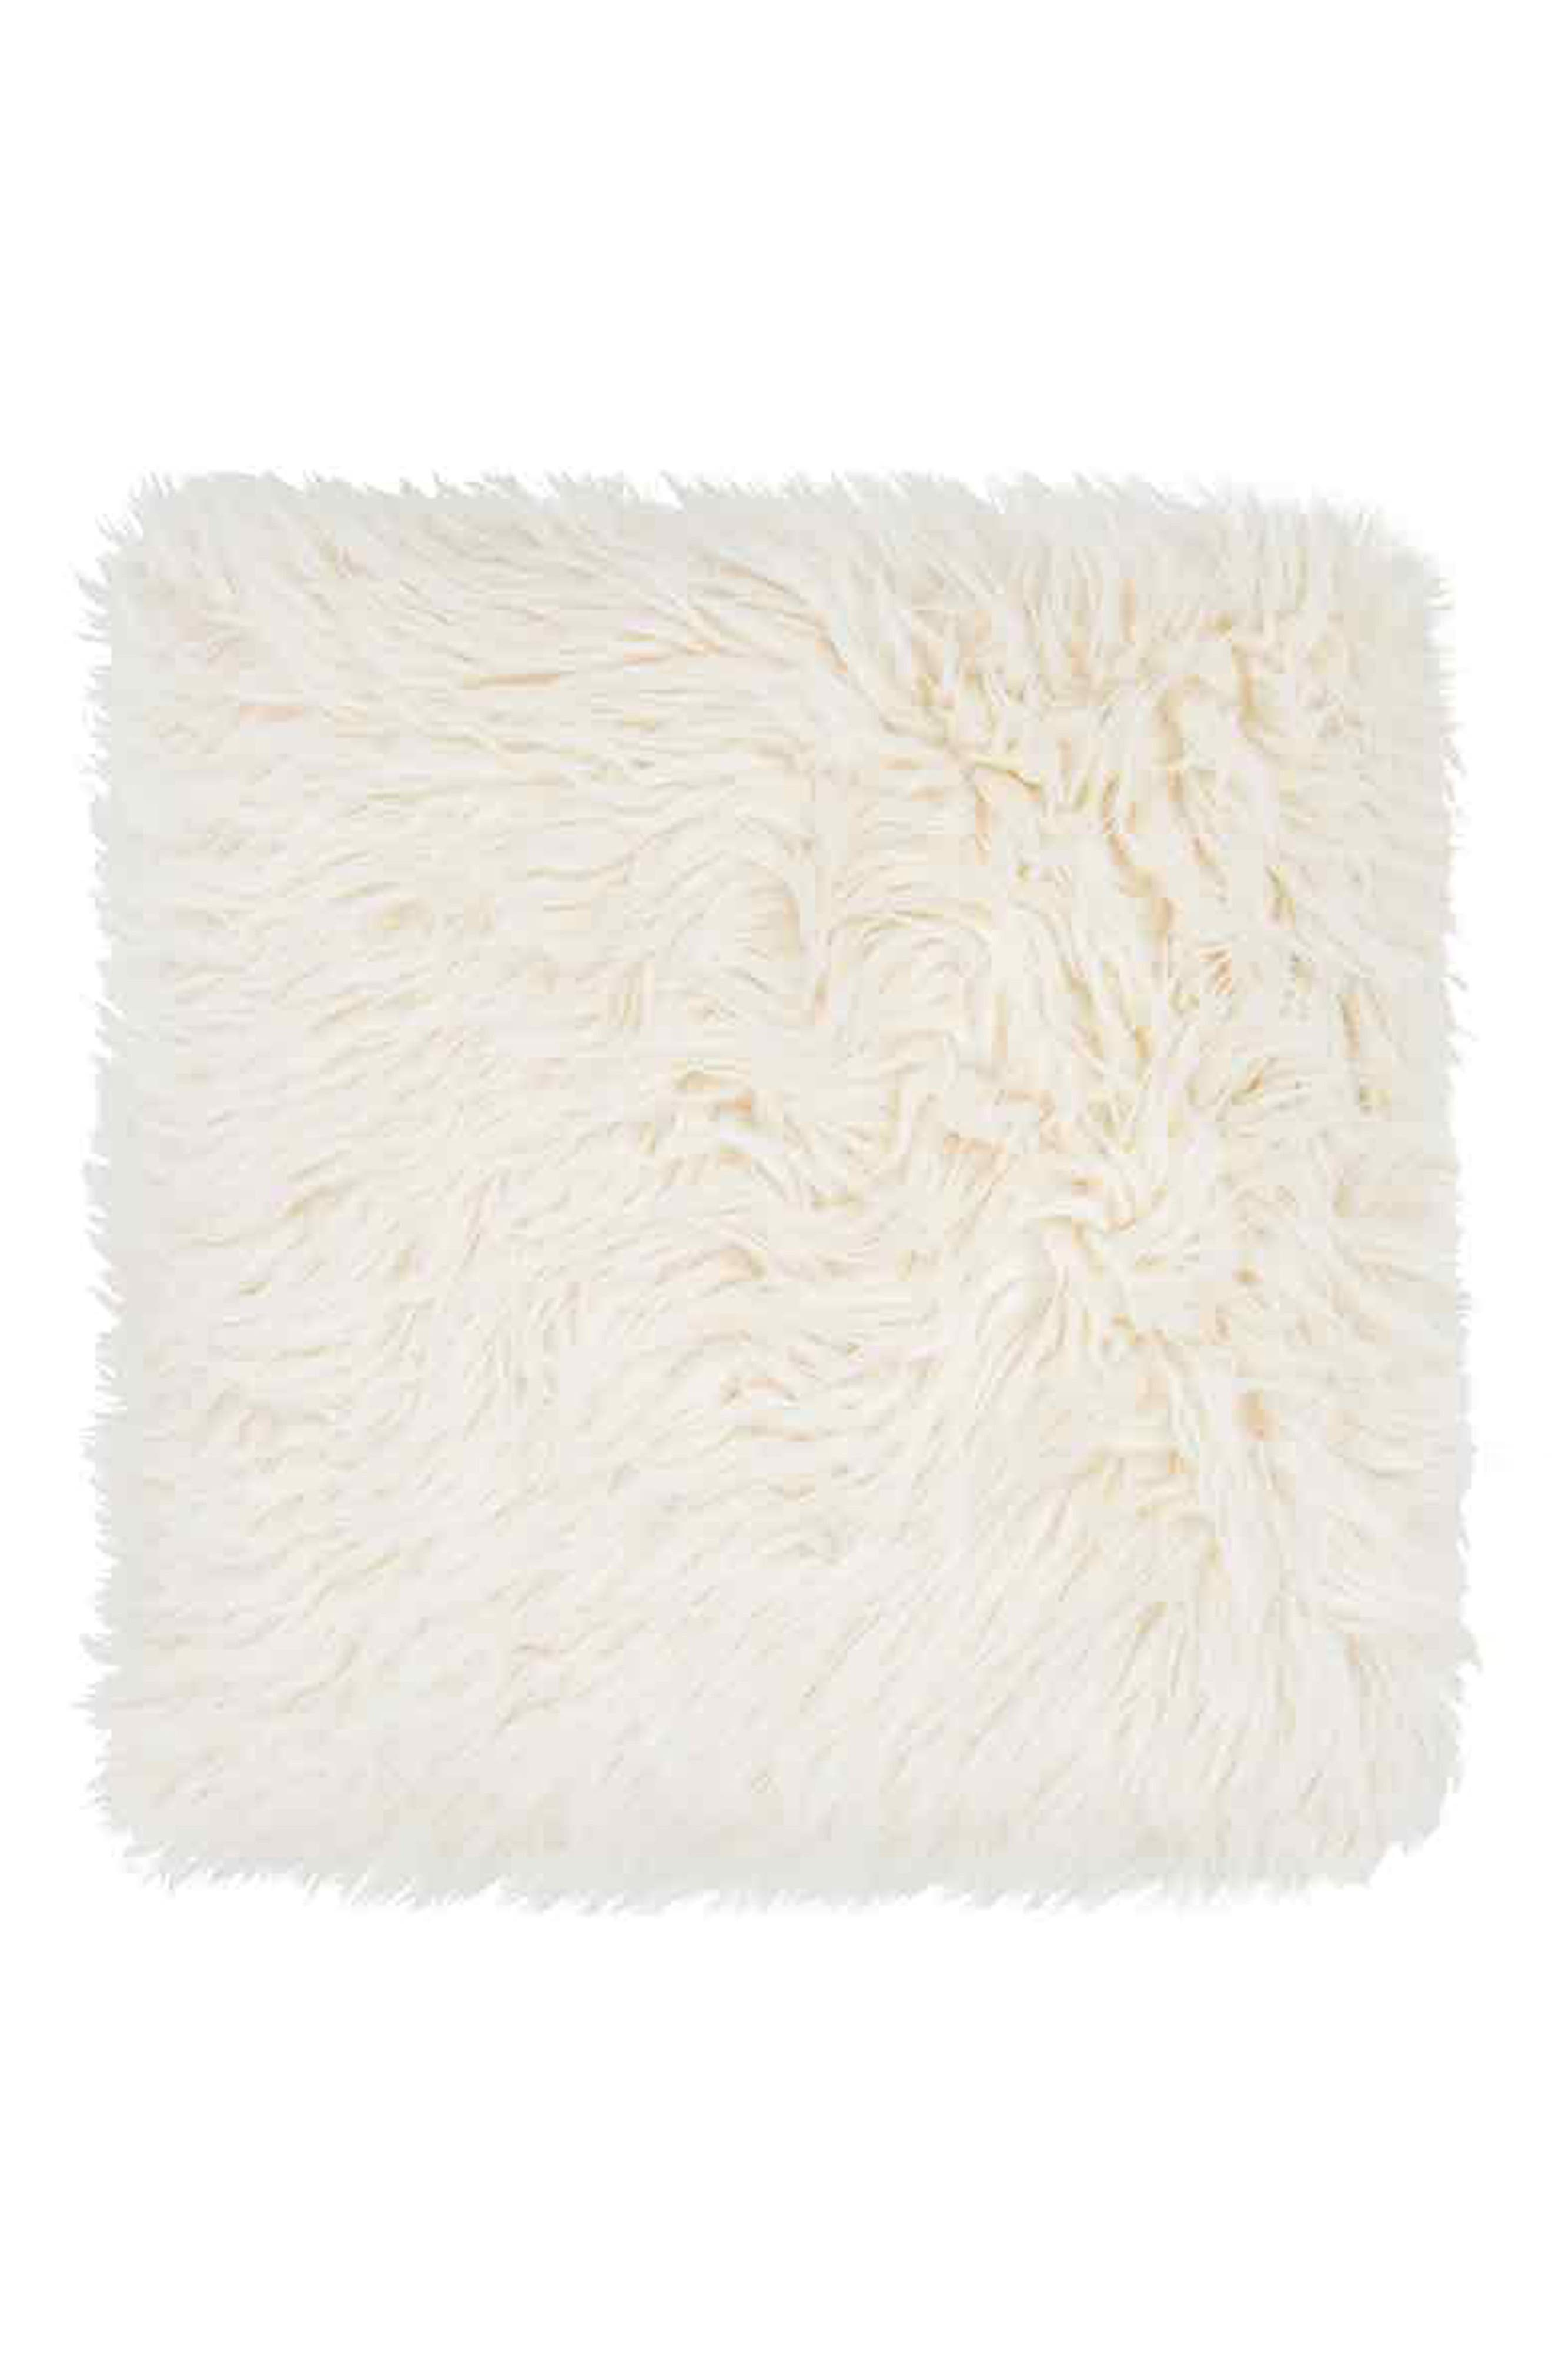 Heron Faux Fur Accent Pillow,                         Main,                         color, Whisper White/ Whisper White